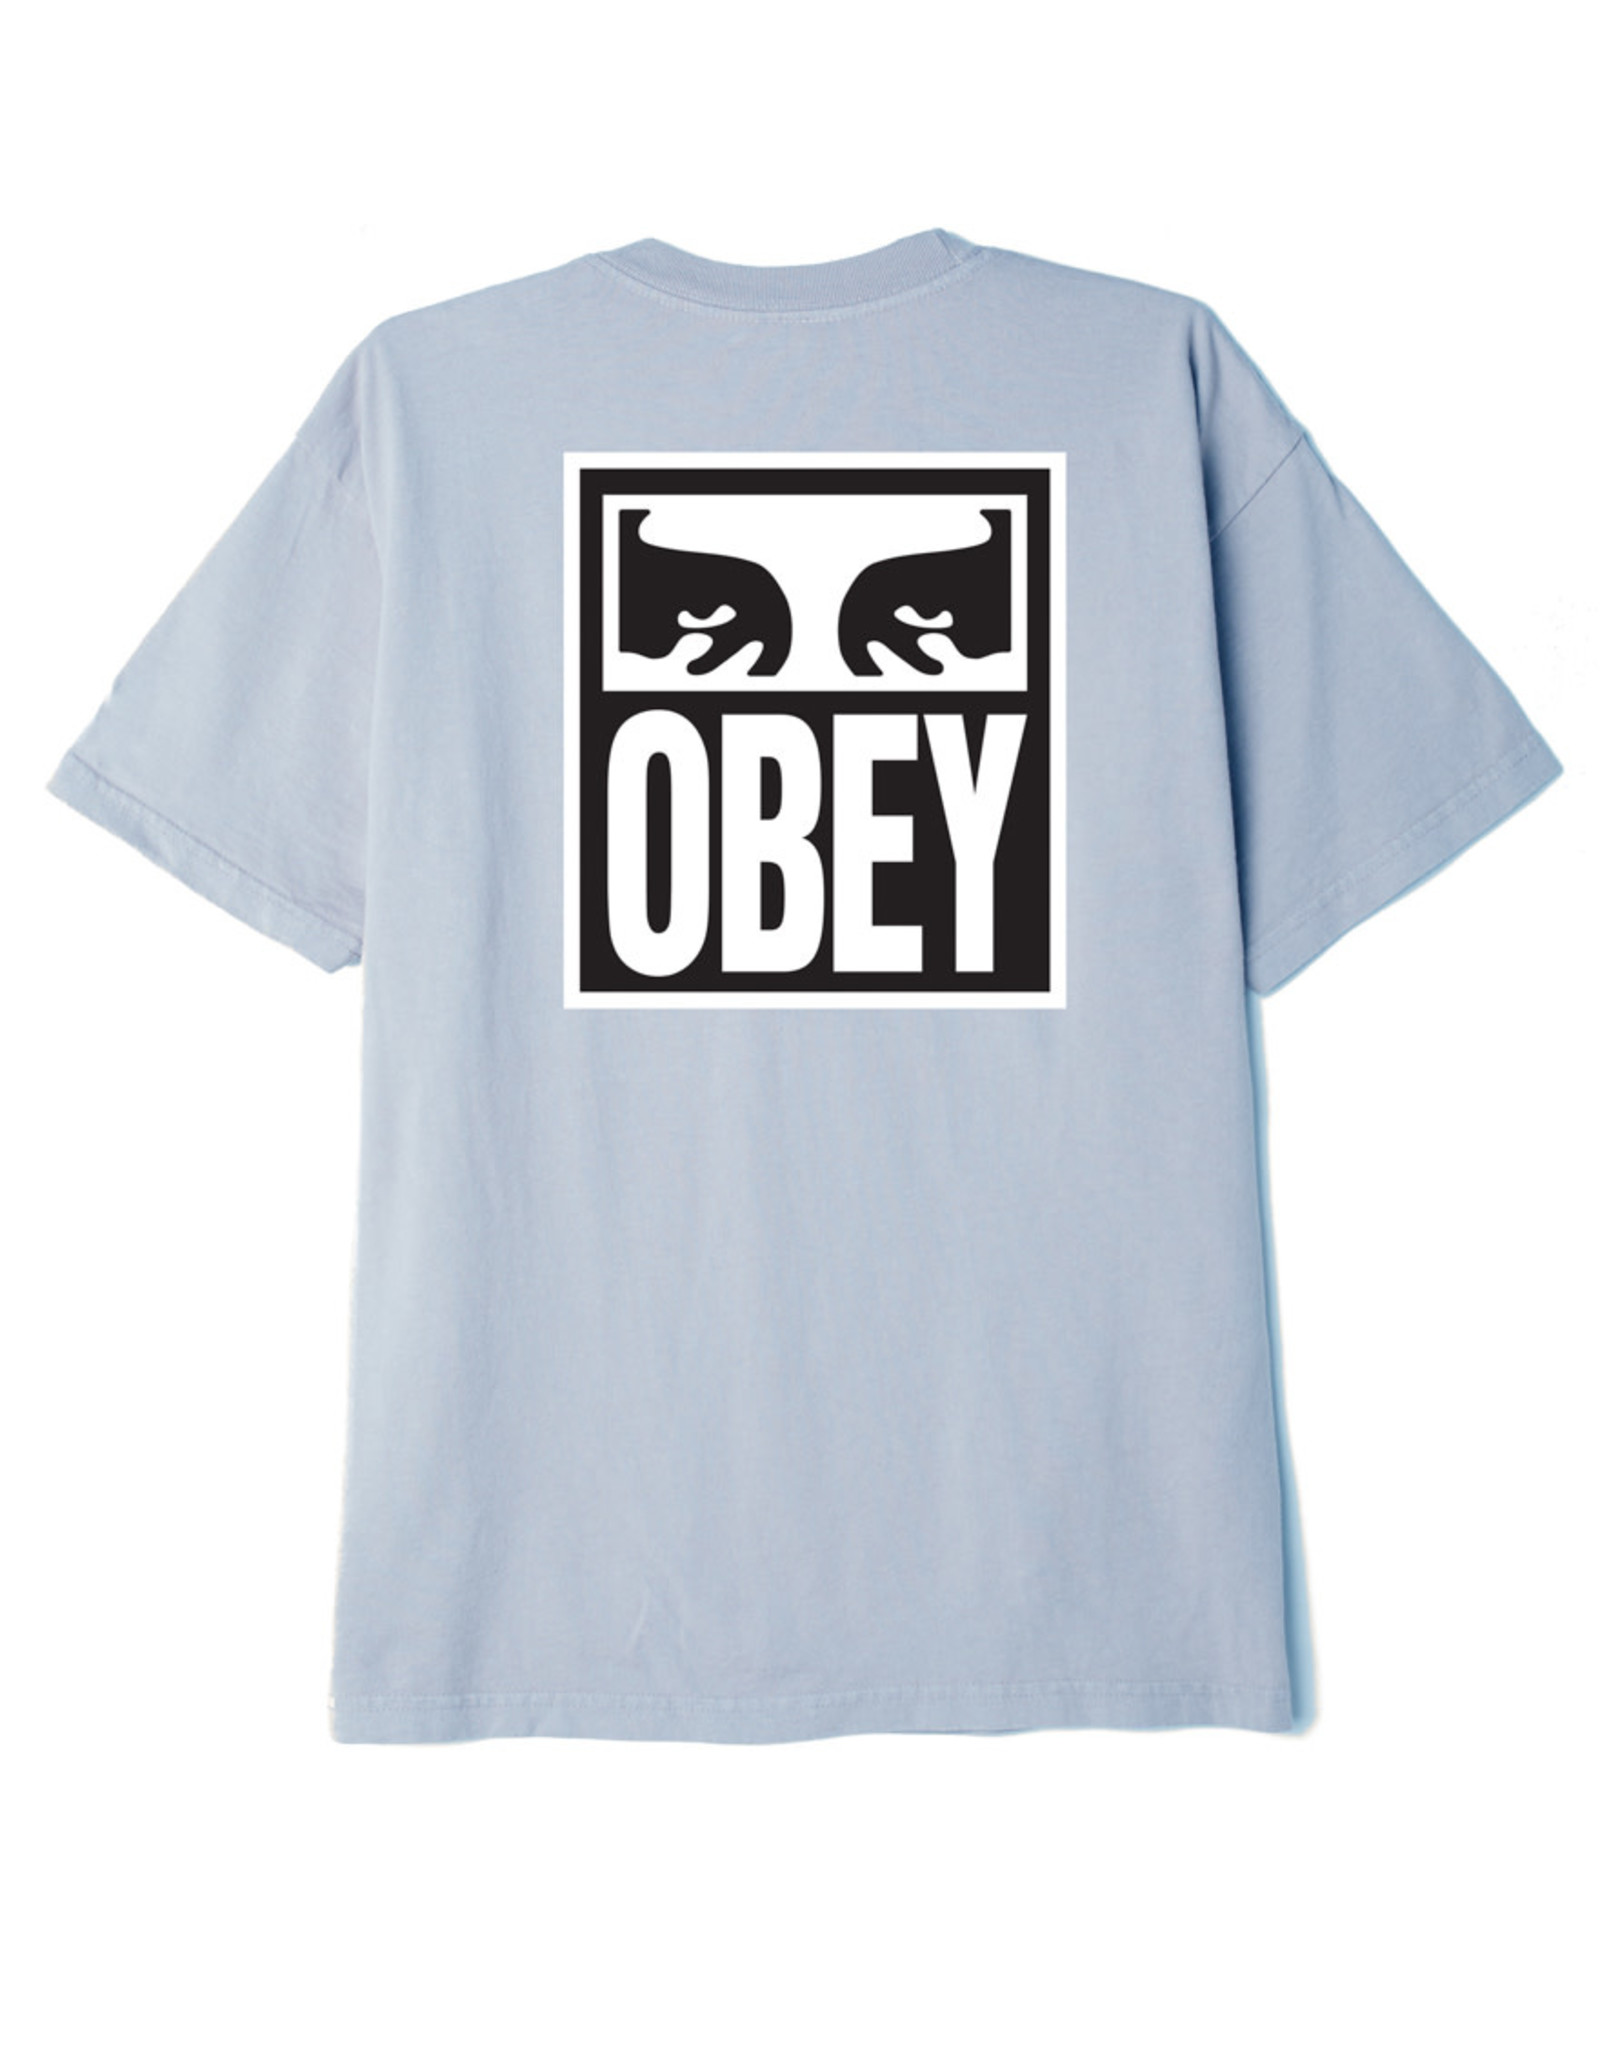 Obey Obey - T-shirt femme obey eyes custom box lavender